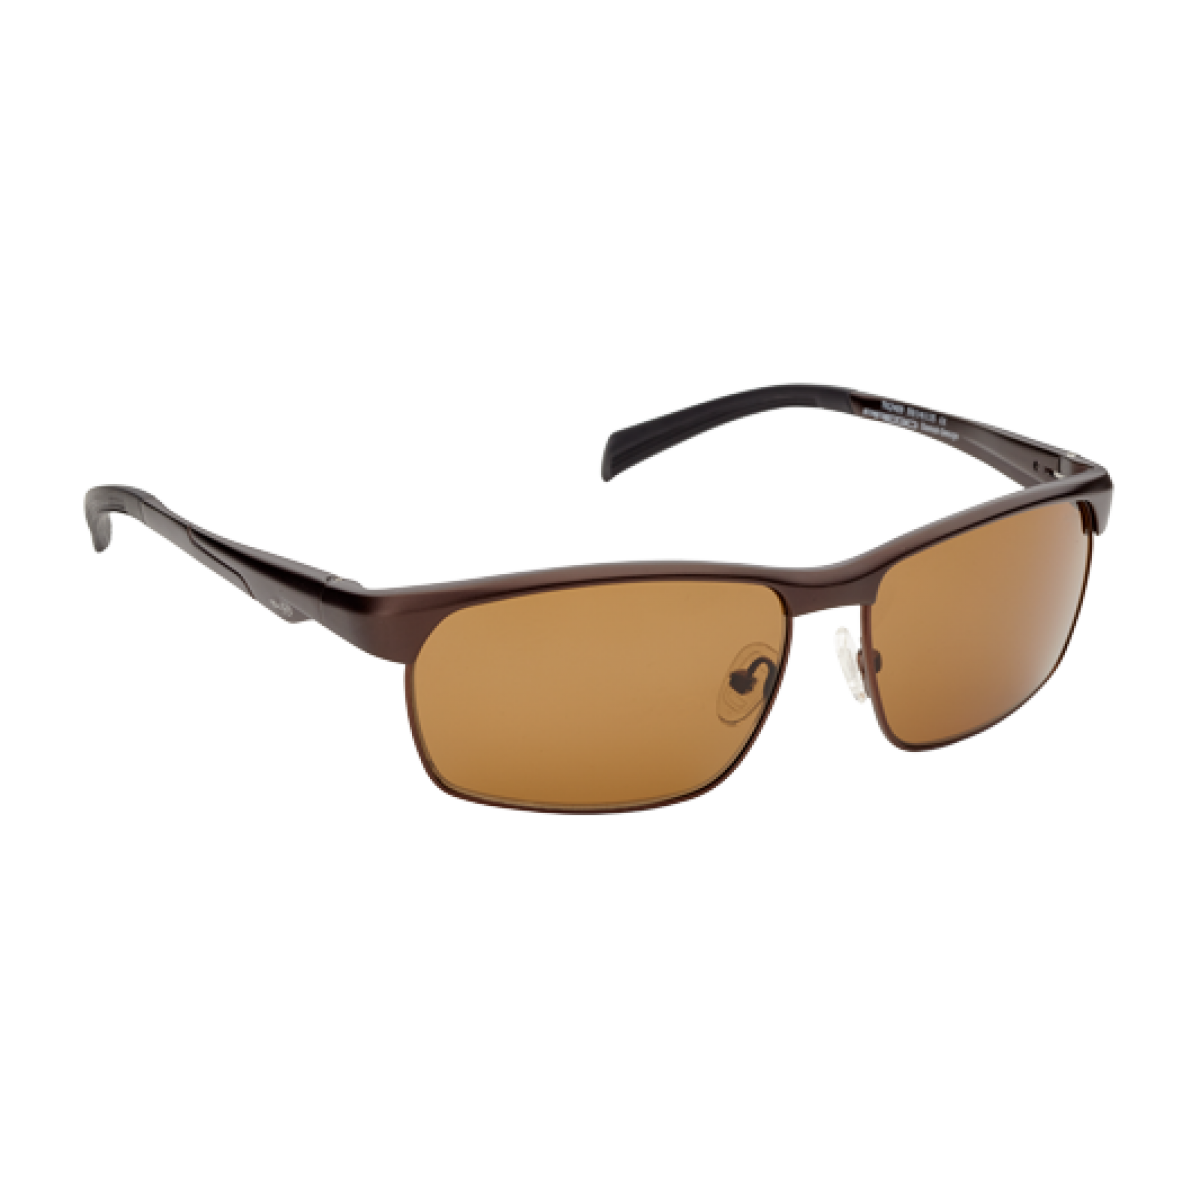 Tom Kristensen Solbrille Model TK2409-3